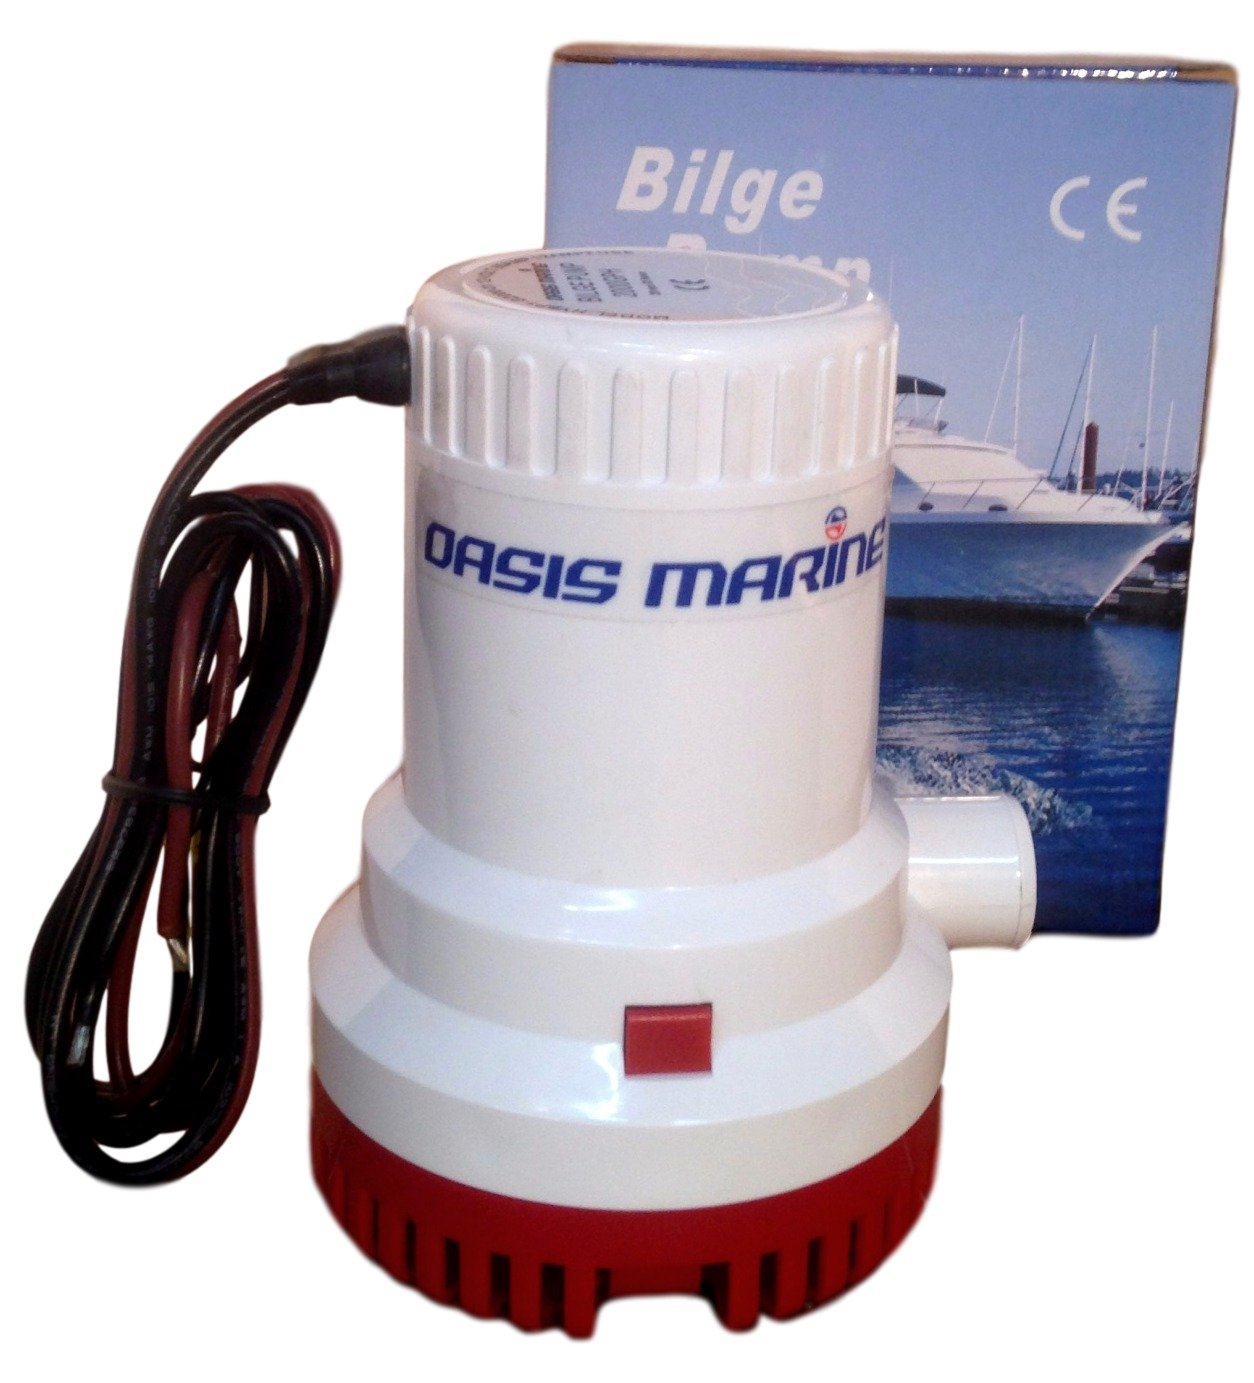 Oasis Marine 2000 GPH 12v submersible Boat Marine Plumbing Electric Bilge Pump 1 1/8 outlet.-Float Switch and 3 Marine heat shrink wire connectors included